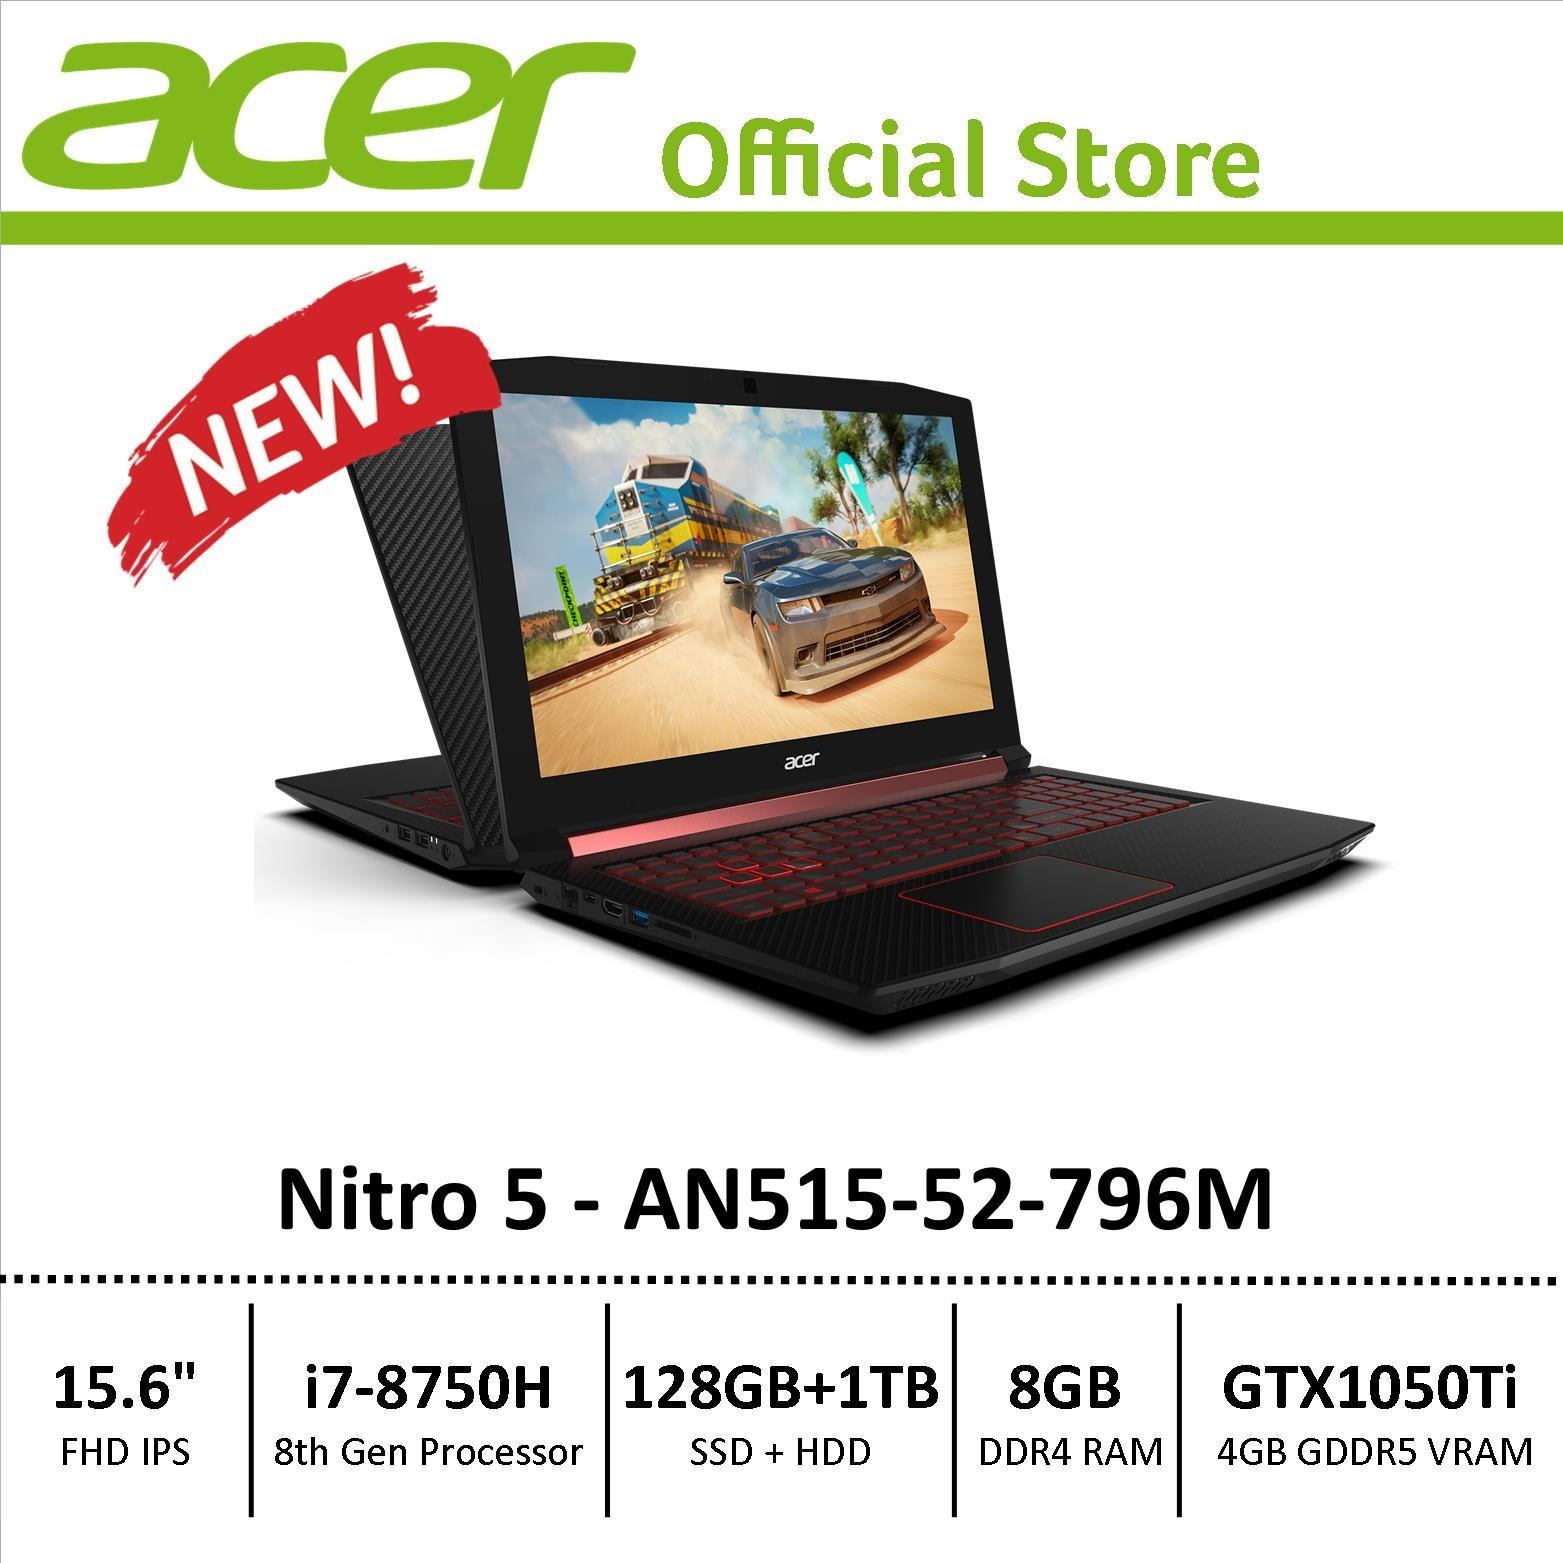 Acer Nitro 5 (AN515-52-796M) Gaming Laptop – 8th Generation i7 Processor with GTX 1050Ti Graphics